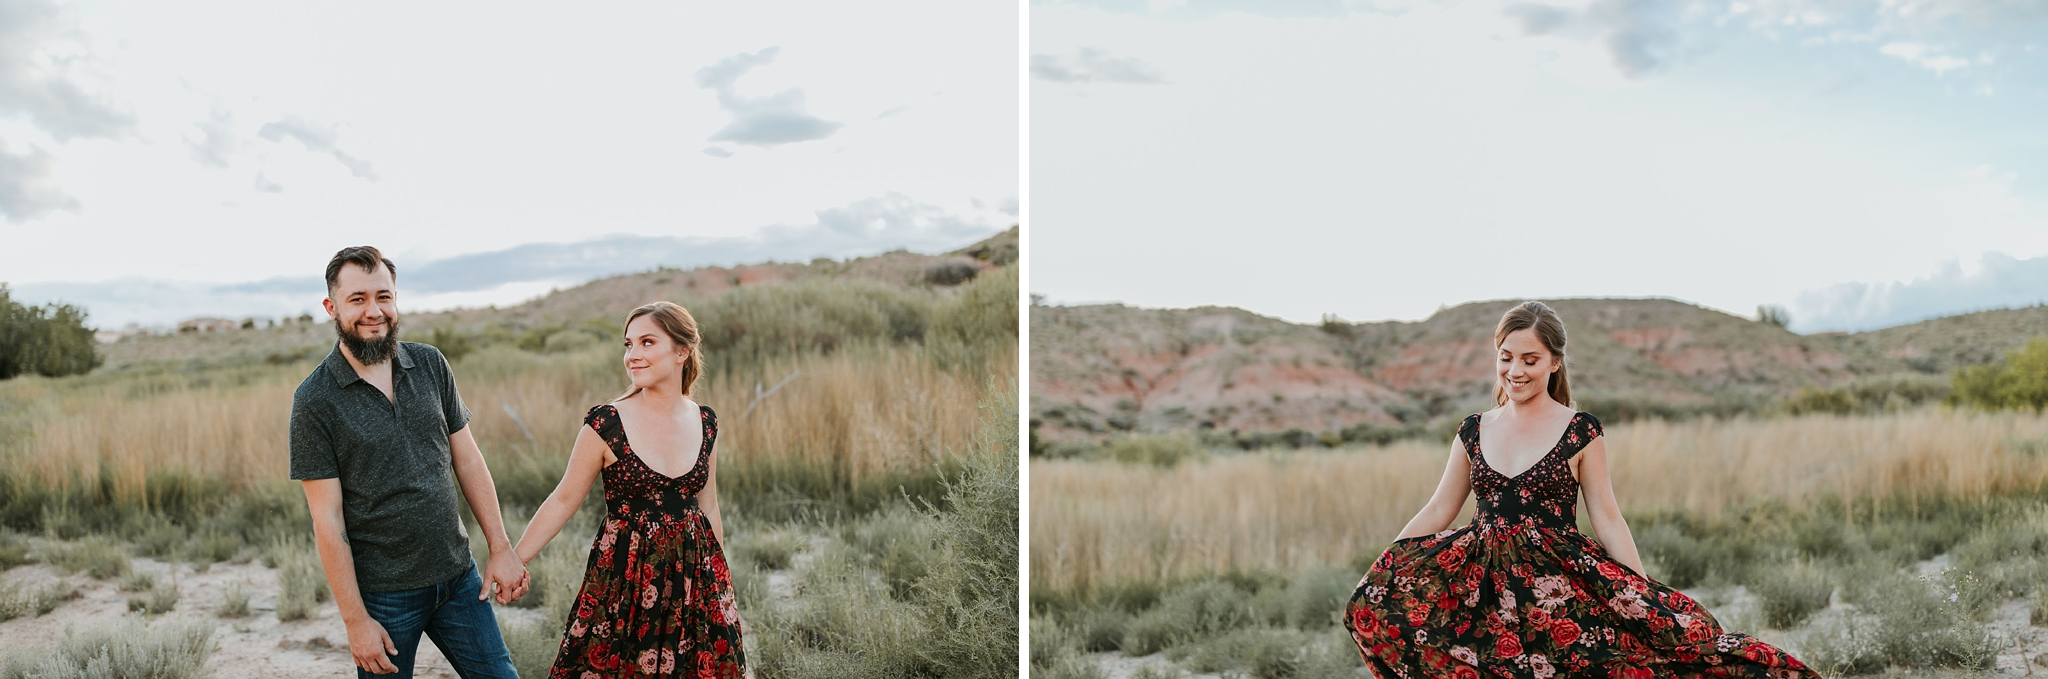 Alicia+lucia+photography+-+albuquerque+wedding+photographer+-+santa+fe+wedding+photography+-+new+mexico+wedding+photographer+-+new+mexico+wedding+-+wedding+makeup+-+makeup+artist+-+wedding+makeup+artist+-+bridal+makeup_0052.jpg